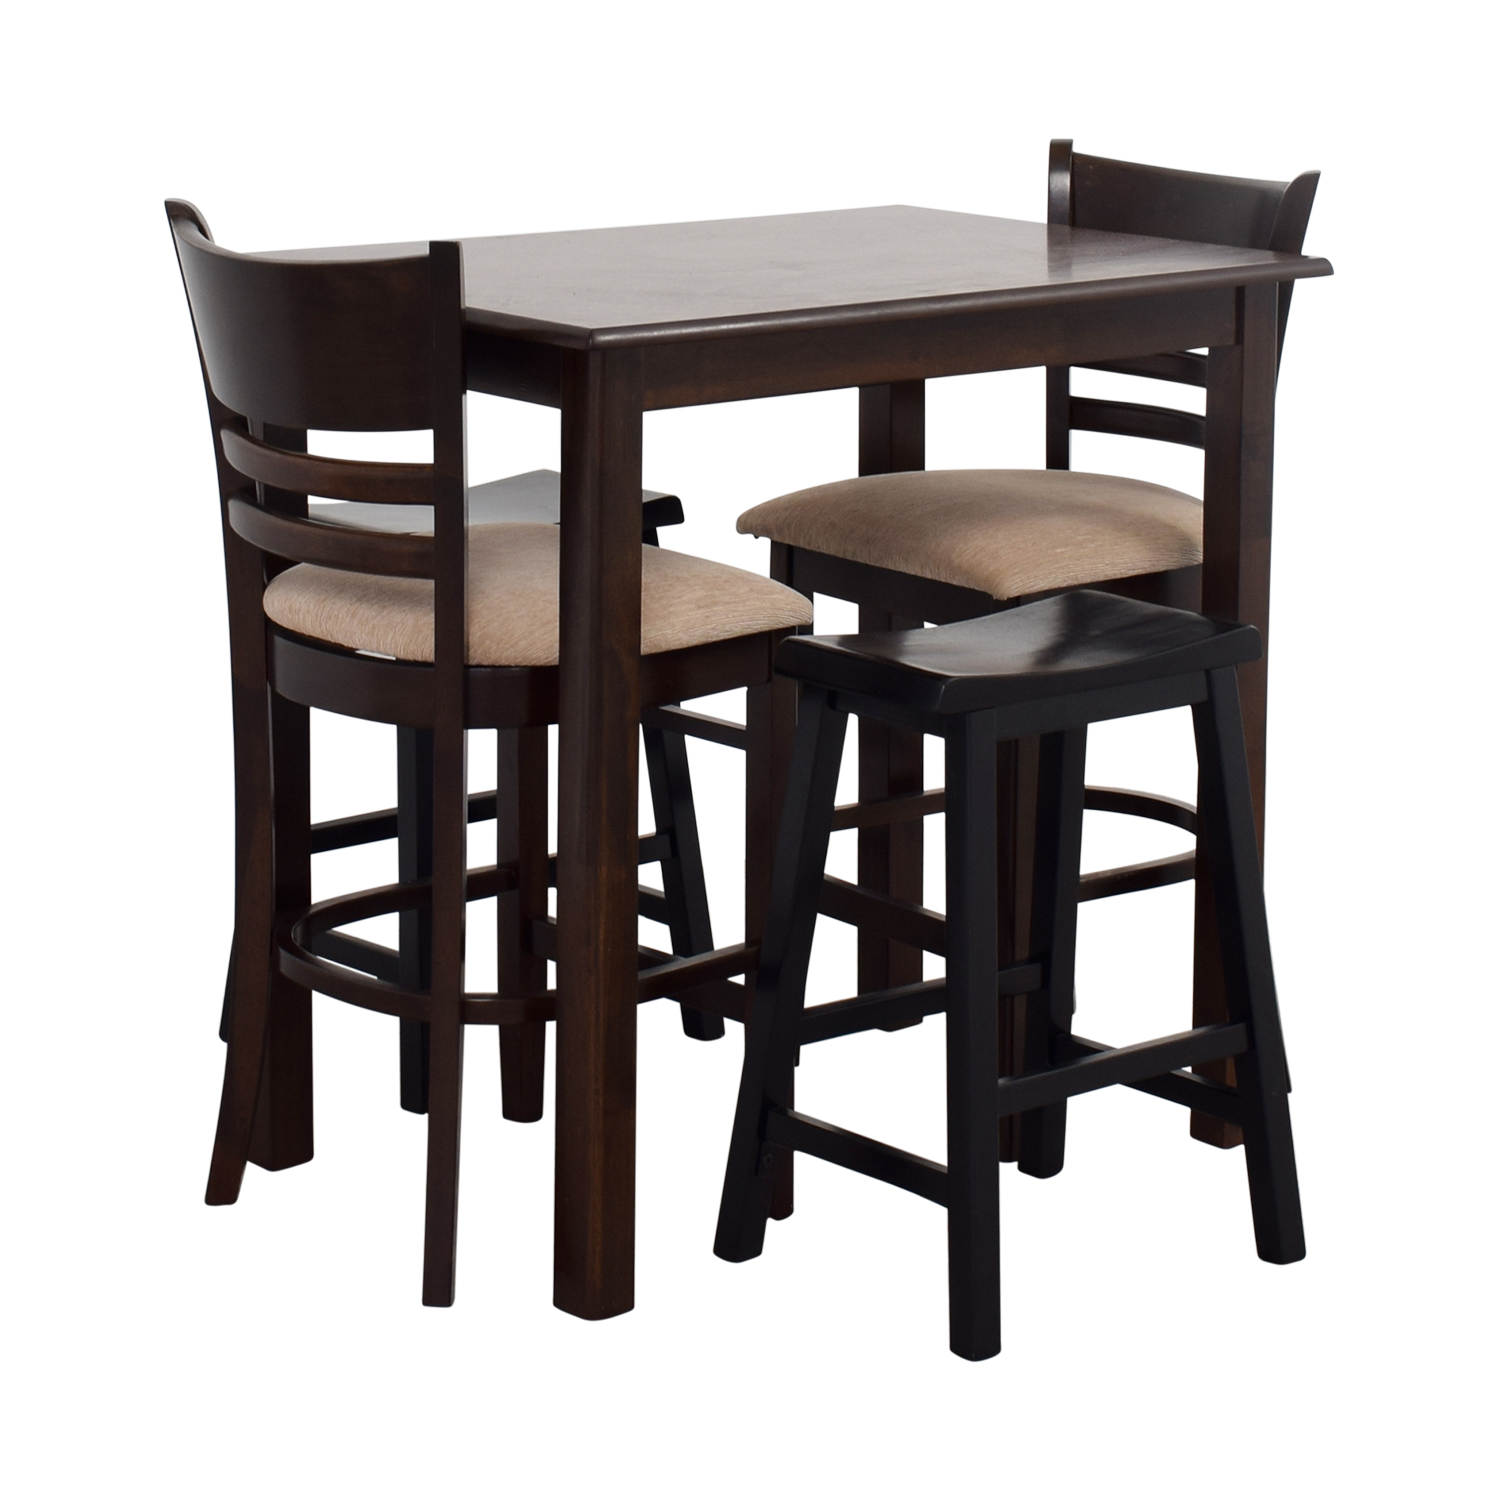 Dining Stools 70 Off Simple Bar Table With Two Chairs And Two Stools